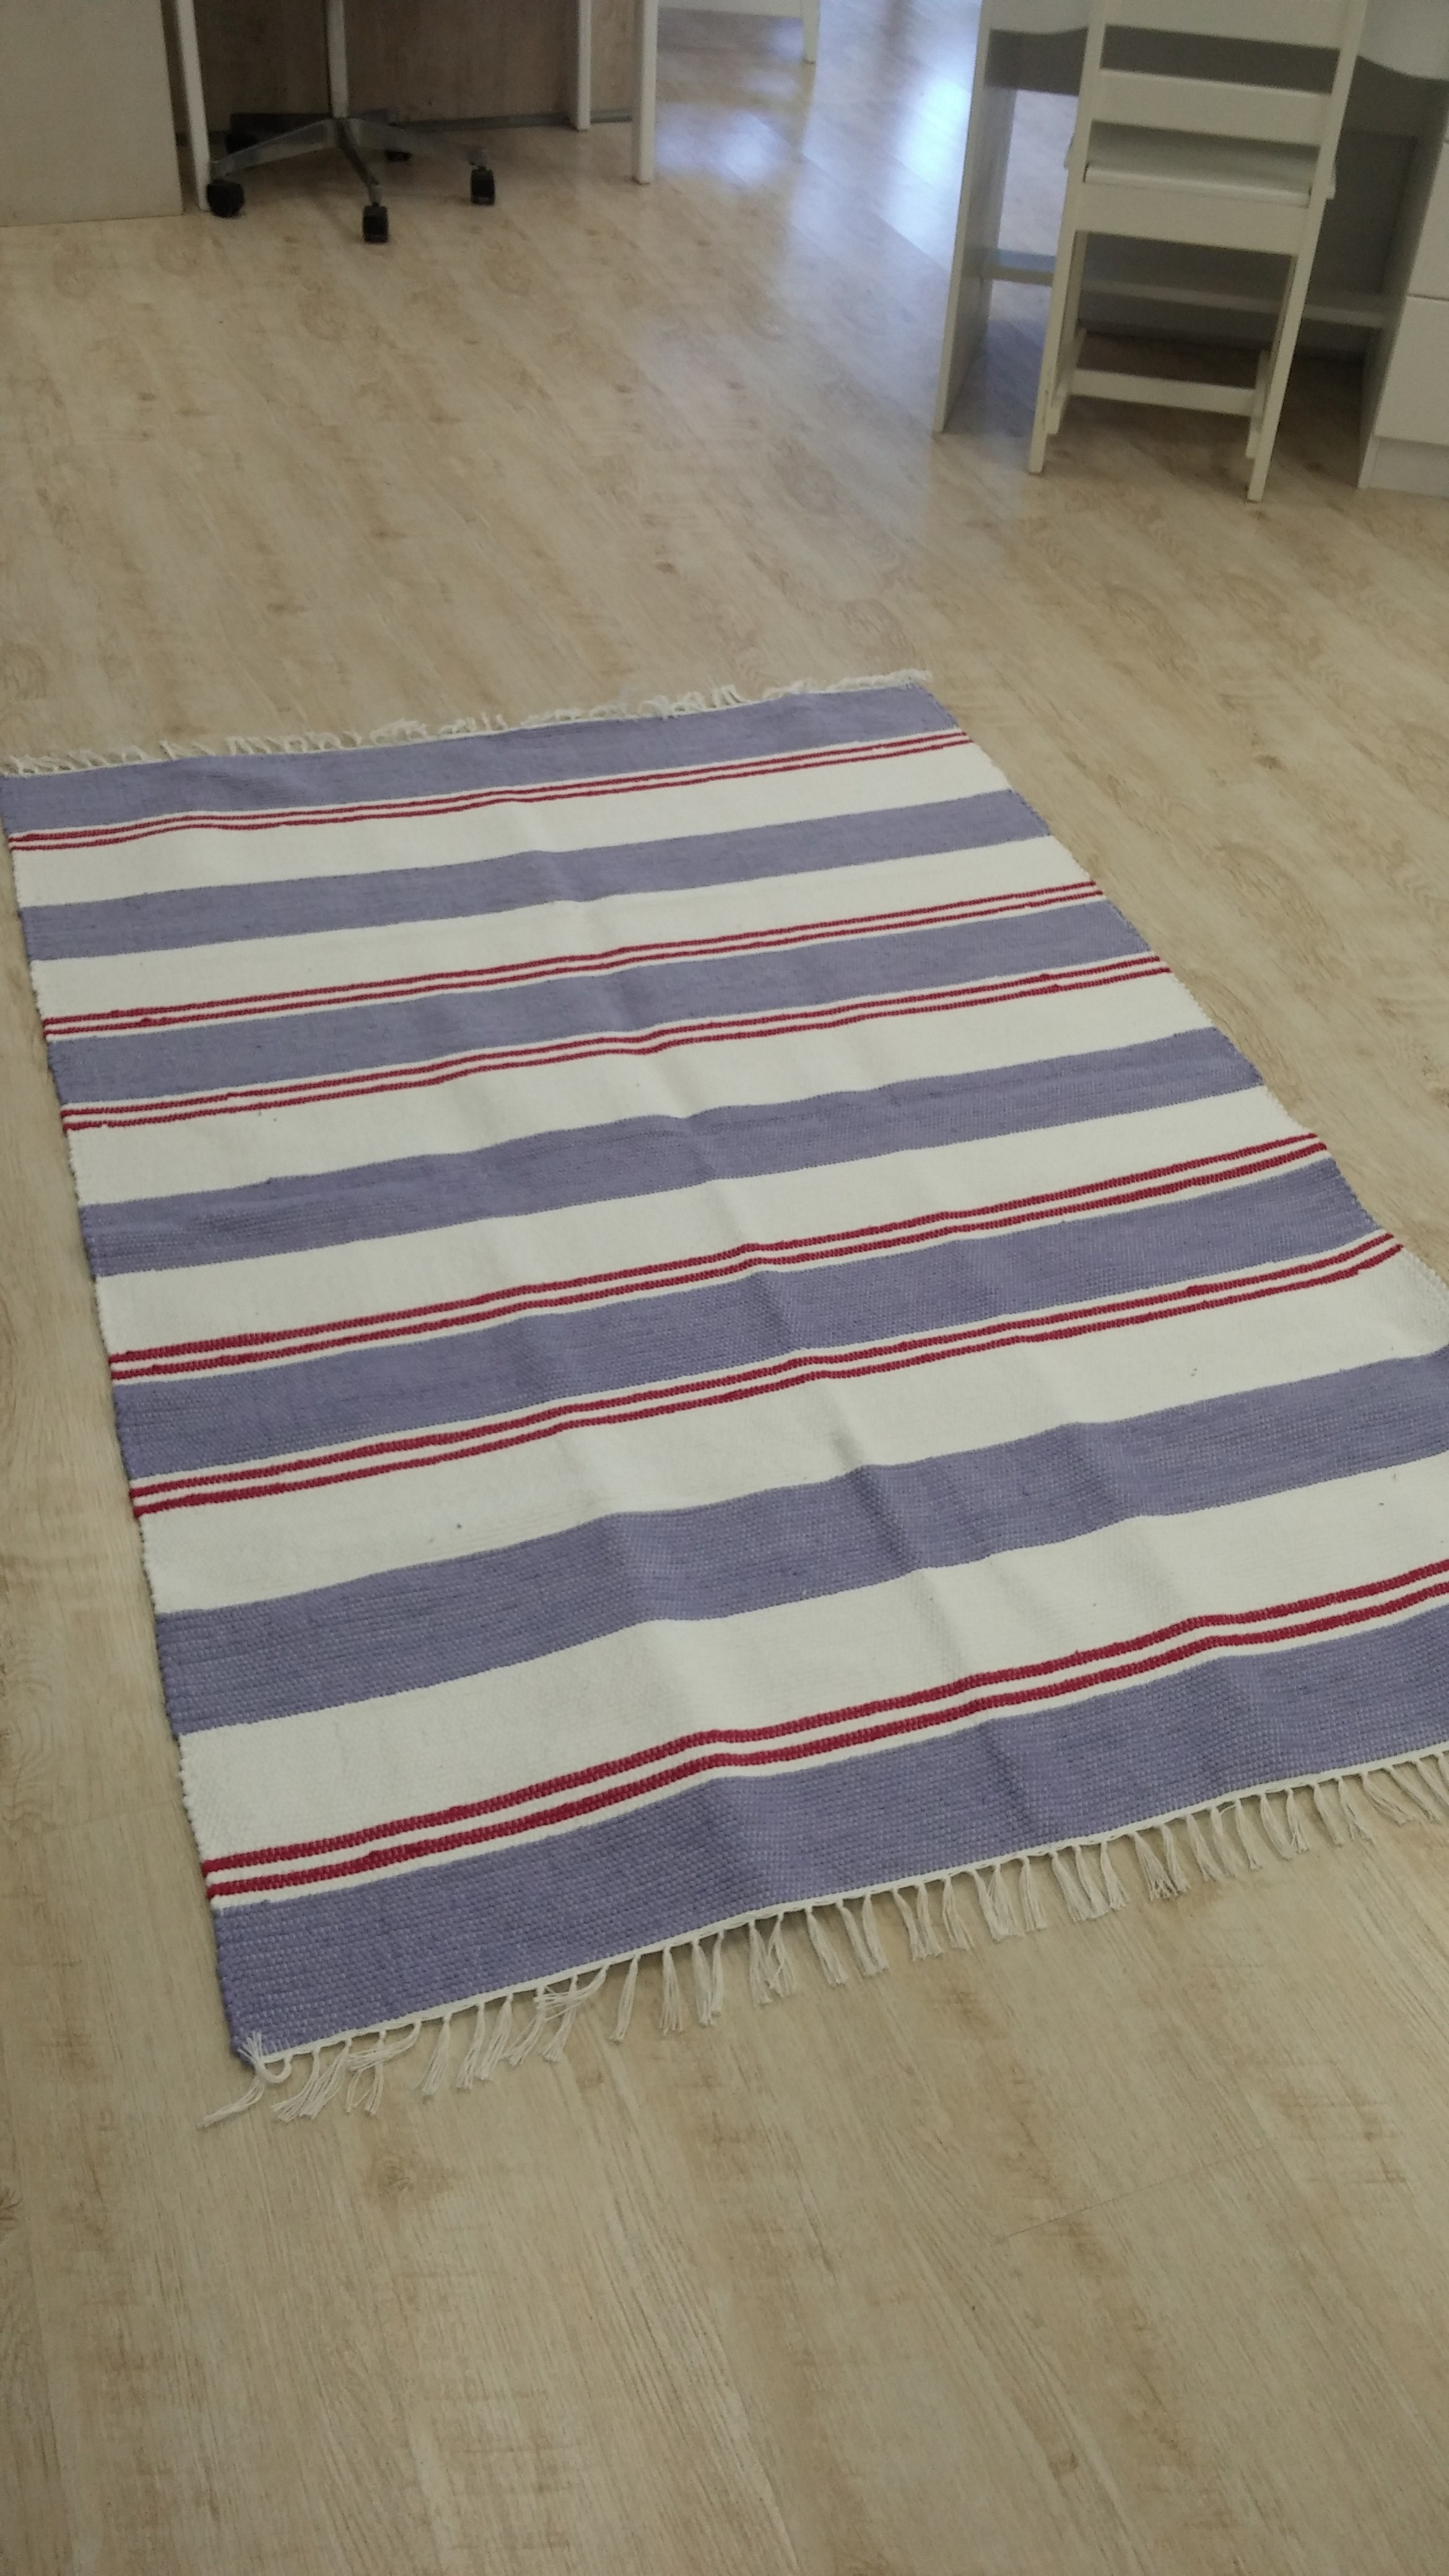 Assorted Large Rugs for the Bedroom Floor  Kids Cove